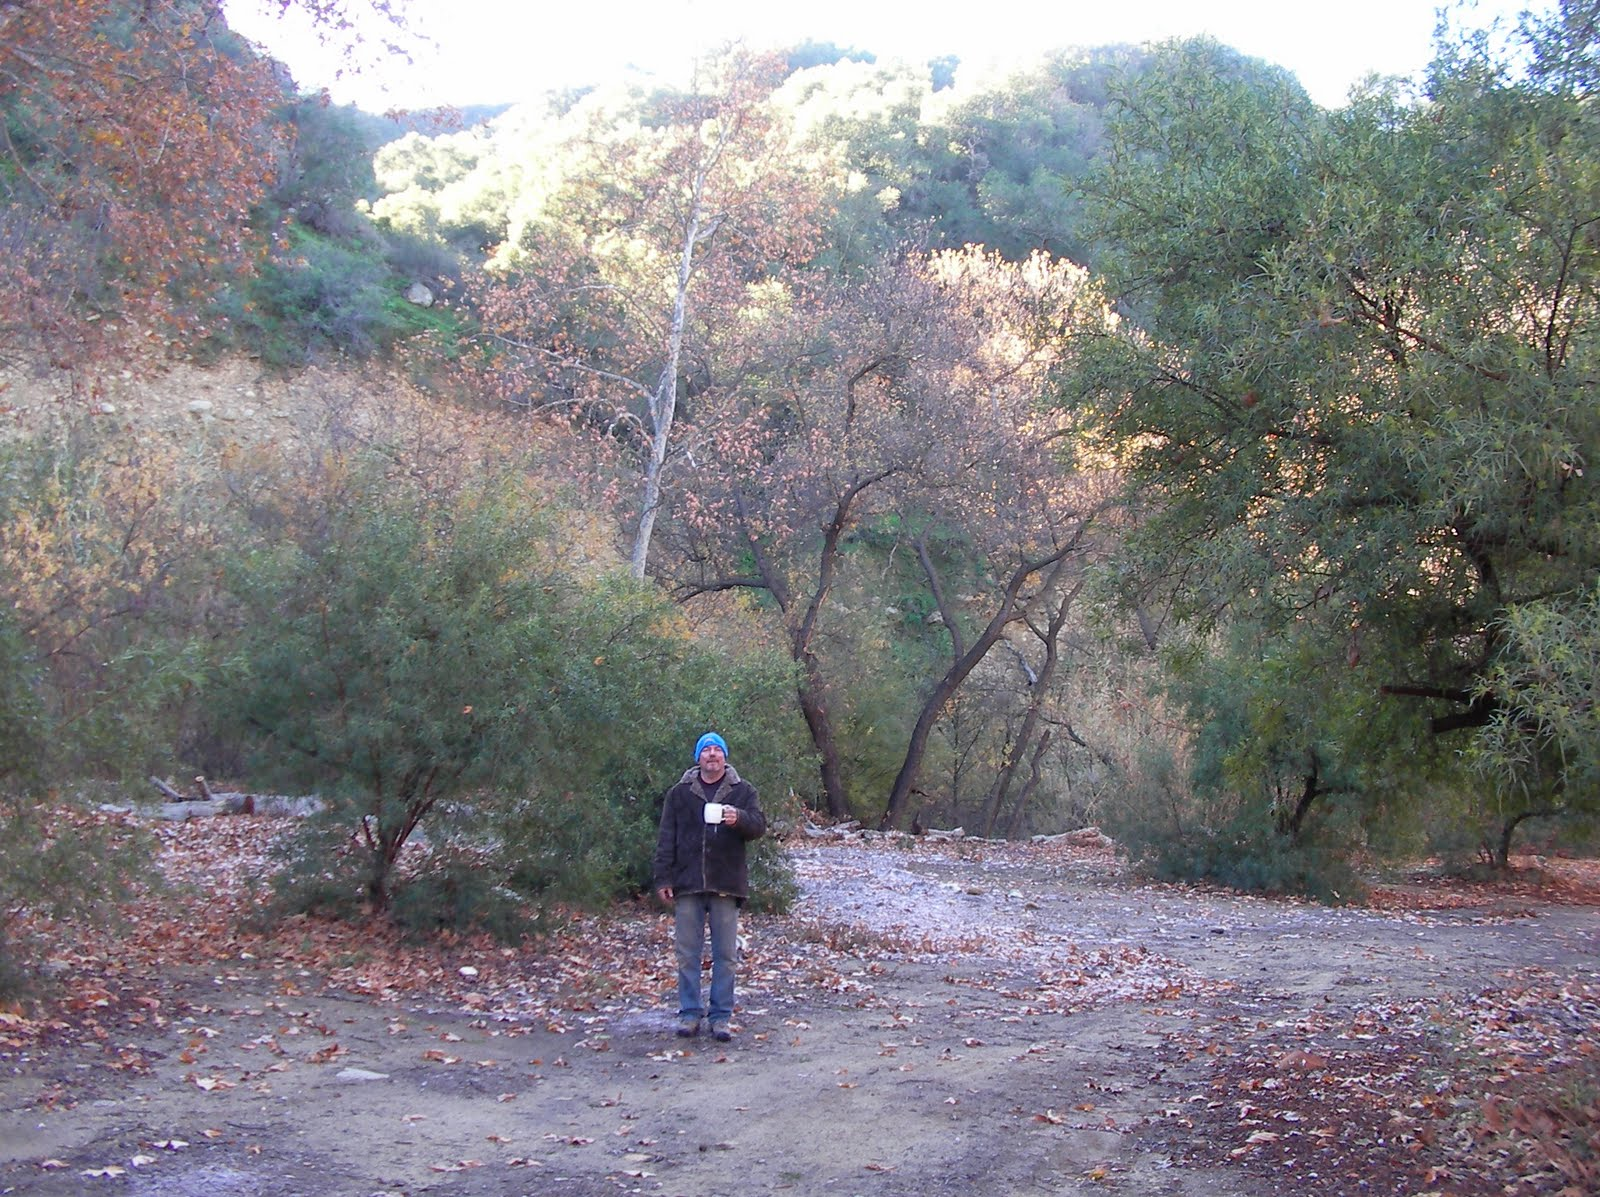 Campground info and reviews: Camp Comfort County Park